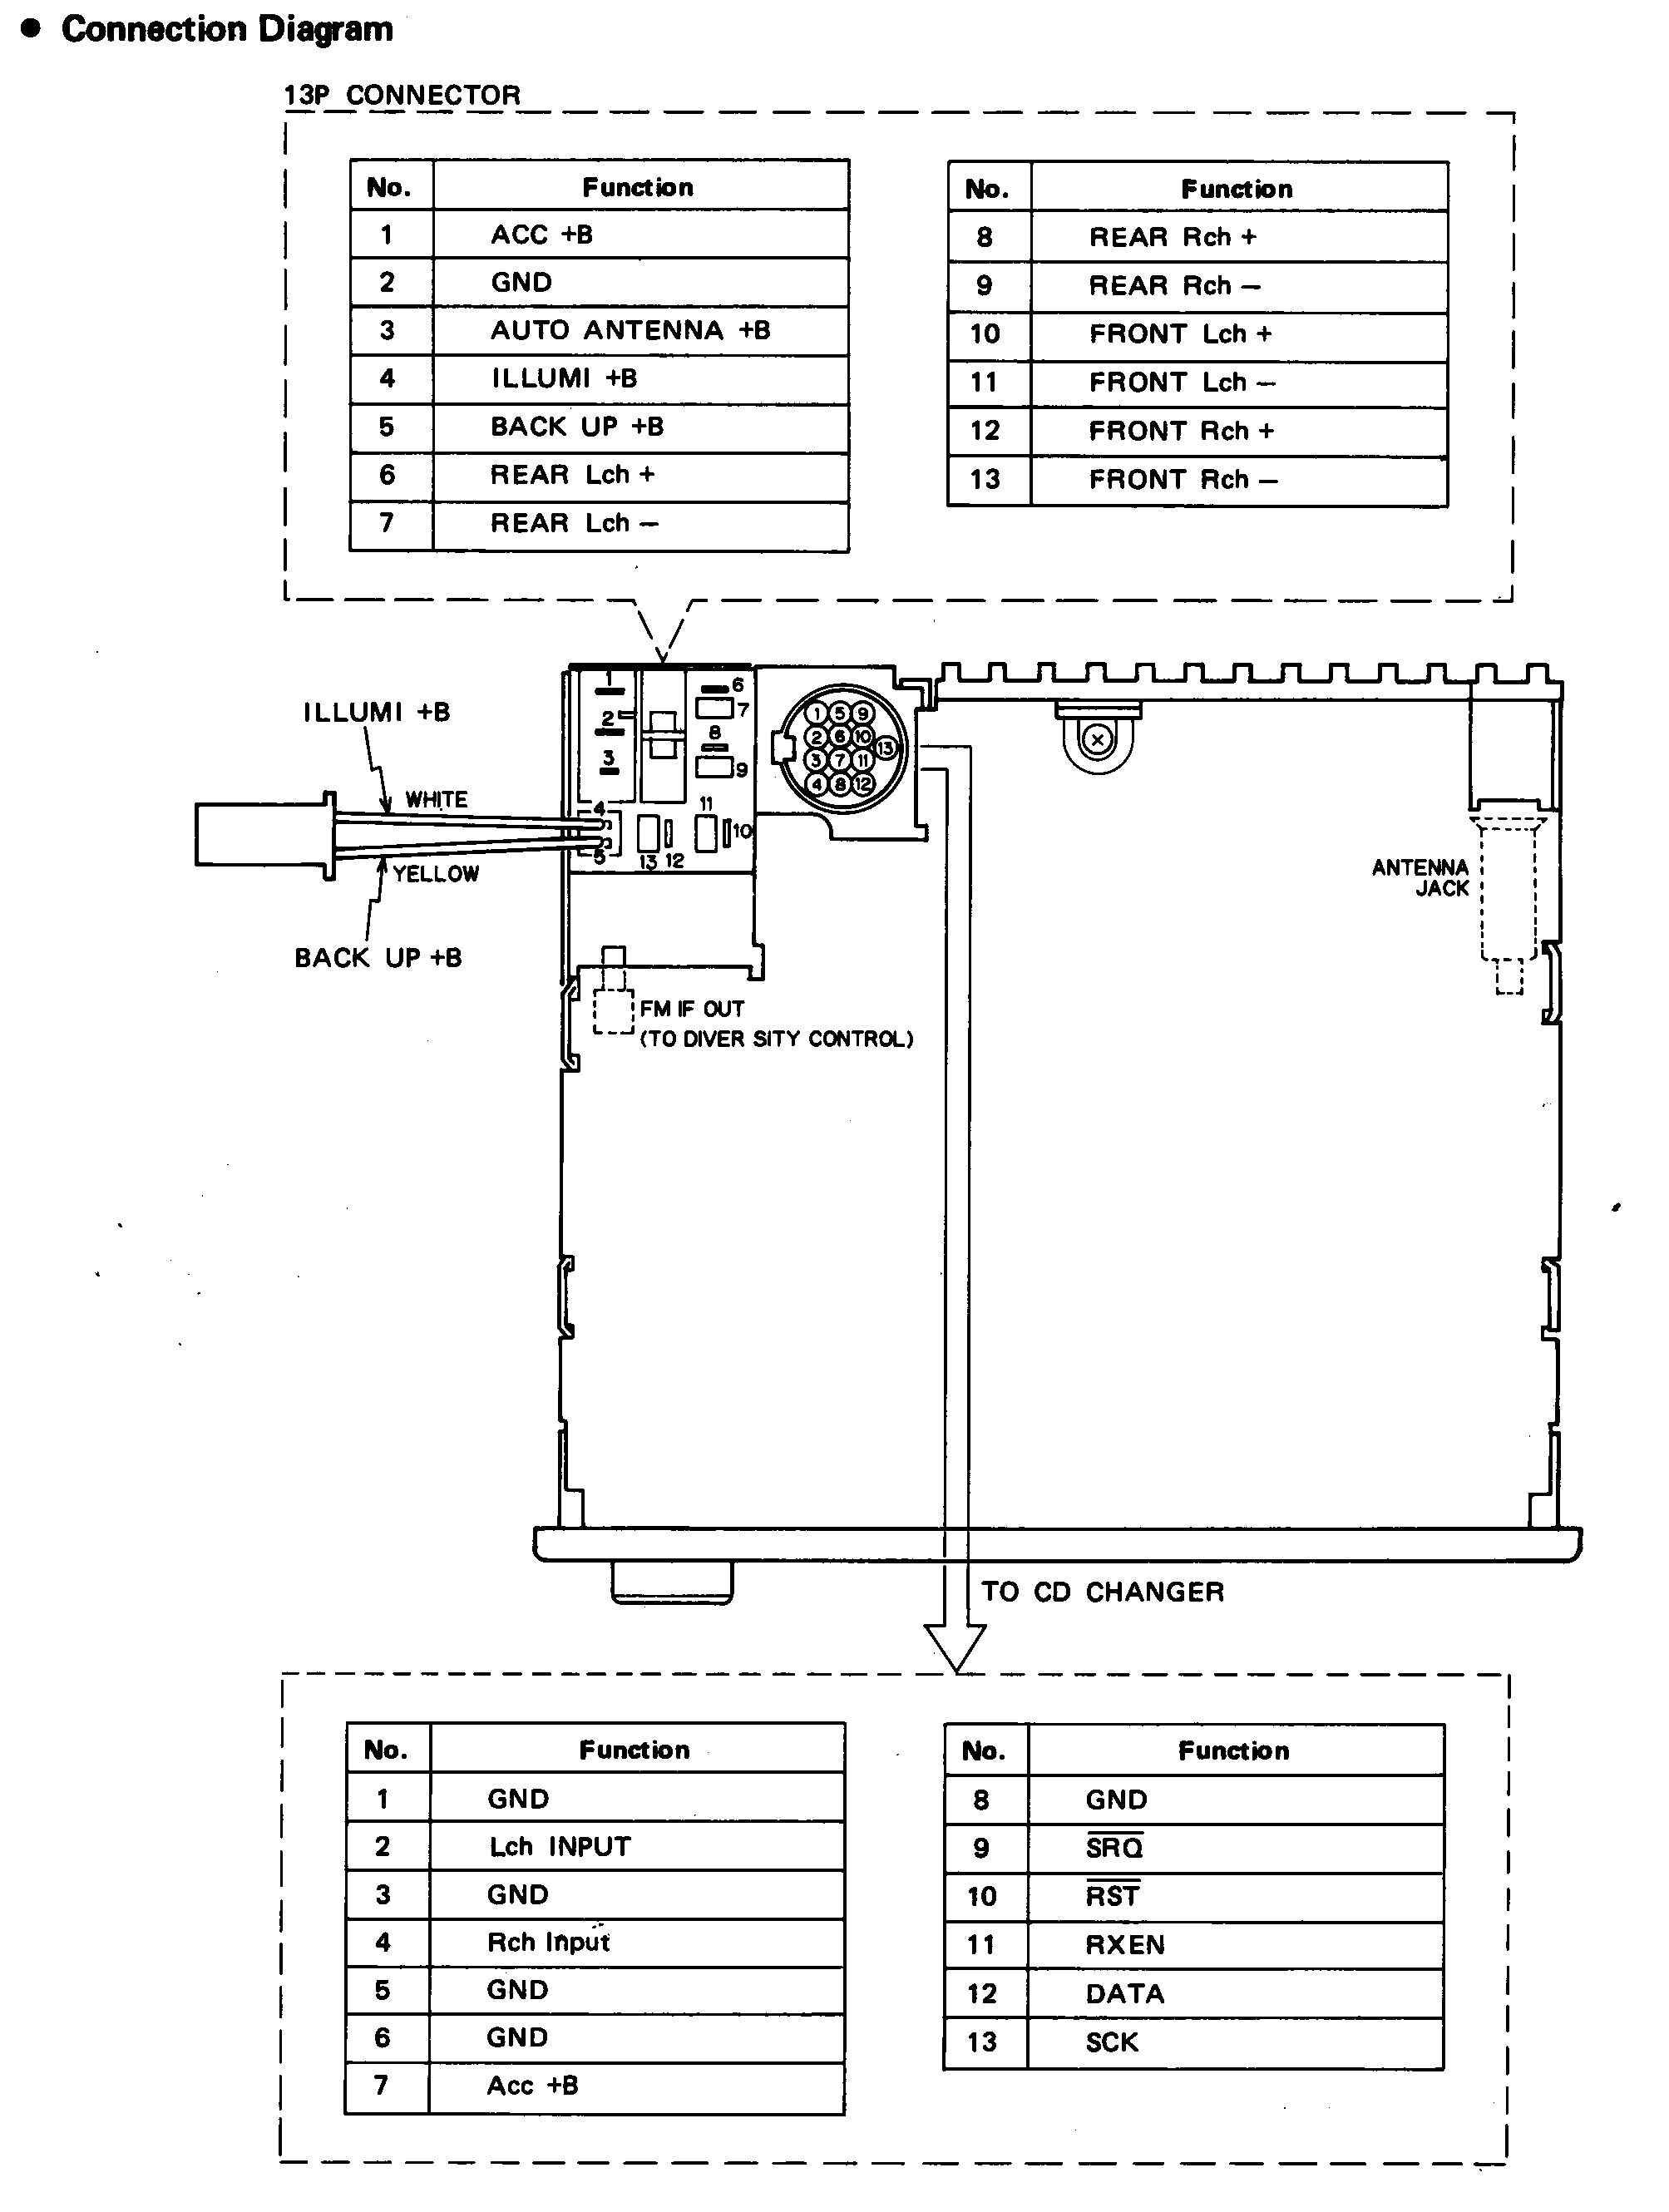 2003 Bmw 325i radio wiring diagram #2 in 2020 | Diagram, Bmw e46, Manual carPinterest